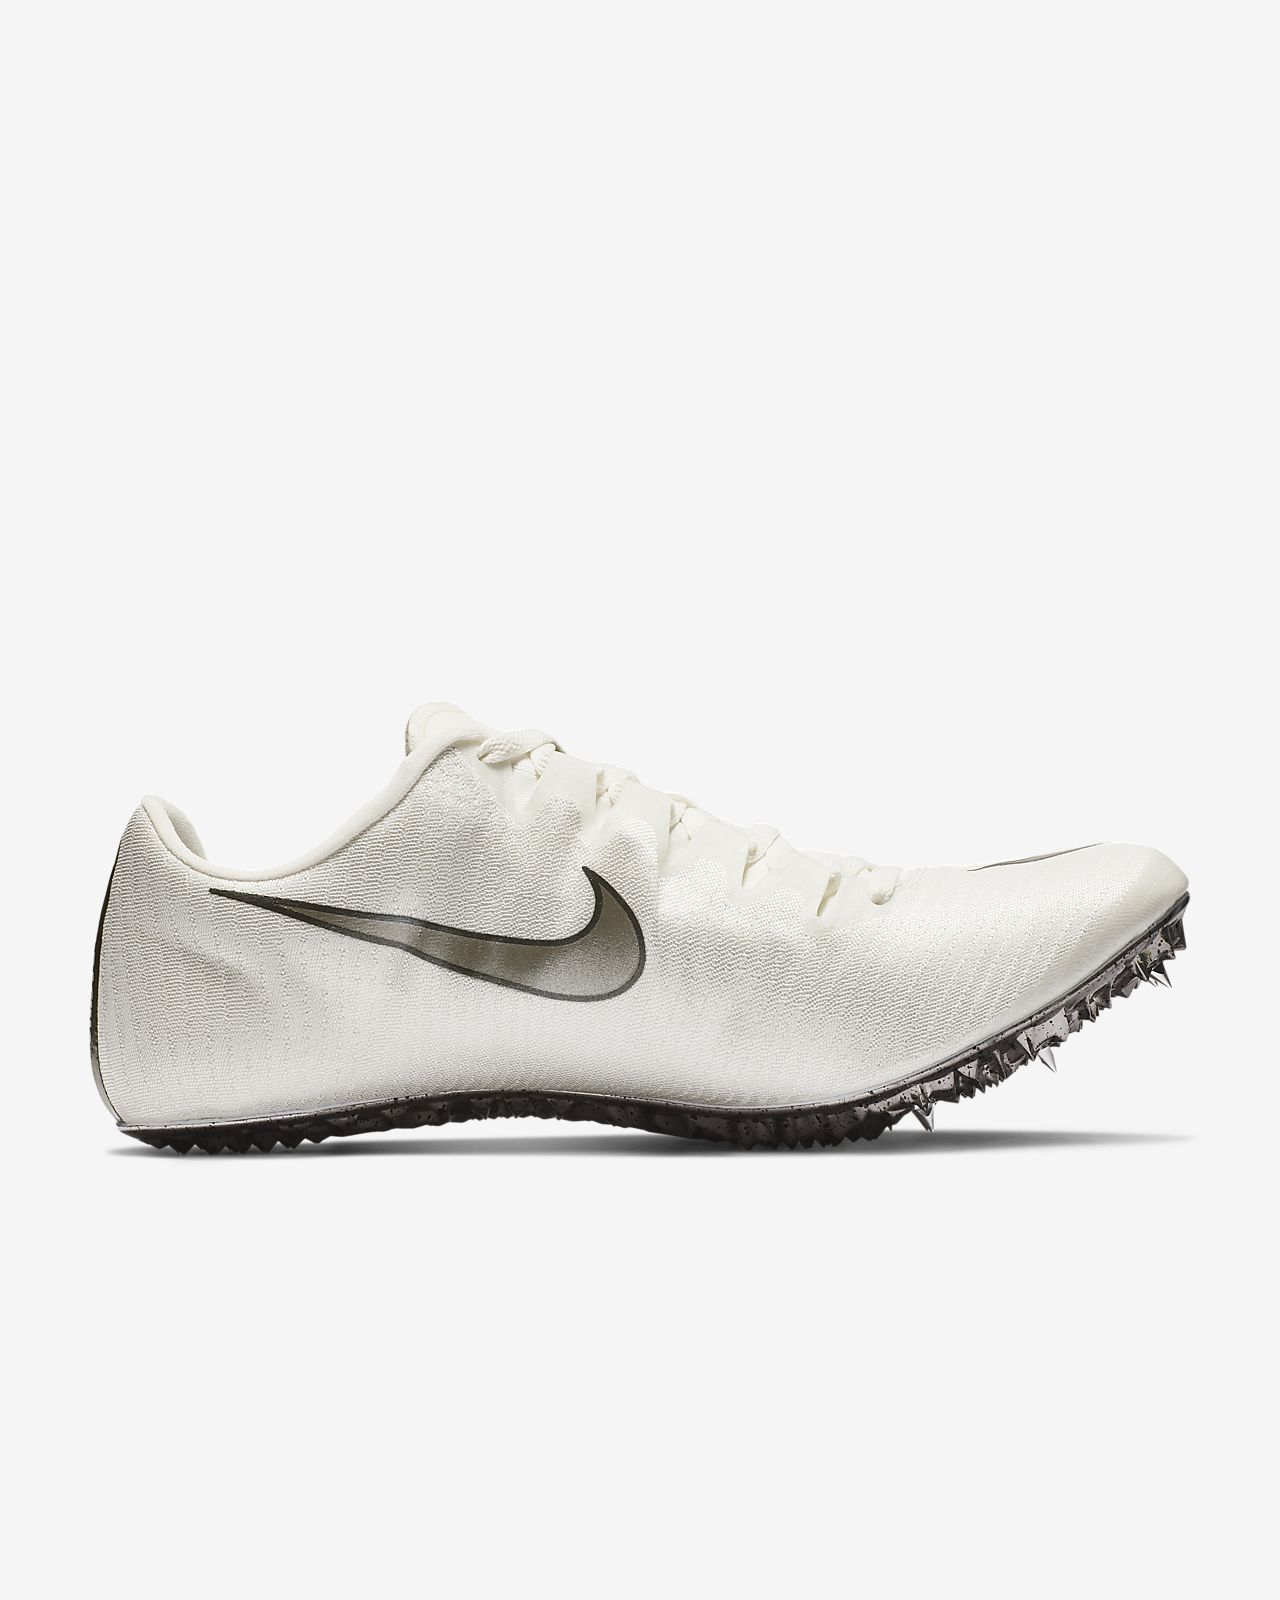 b4f7df7eb55 Nike Superfly Elite Racing Spike. Nike.com AU